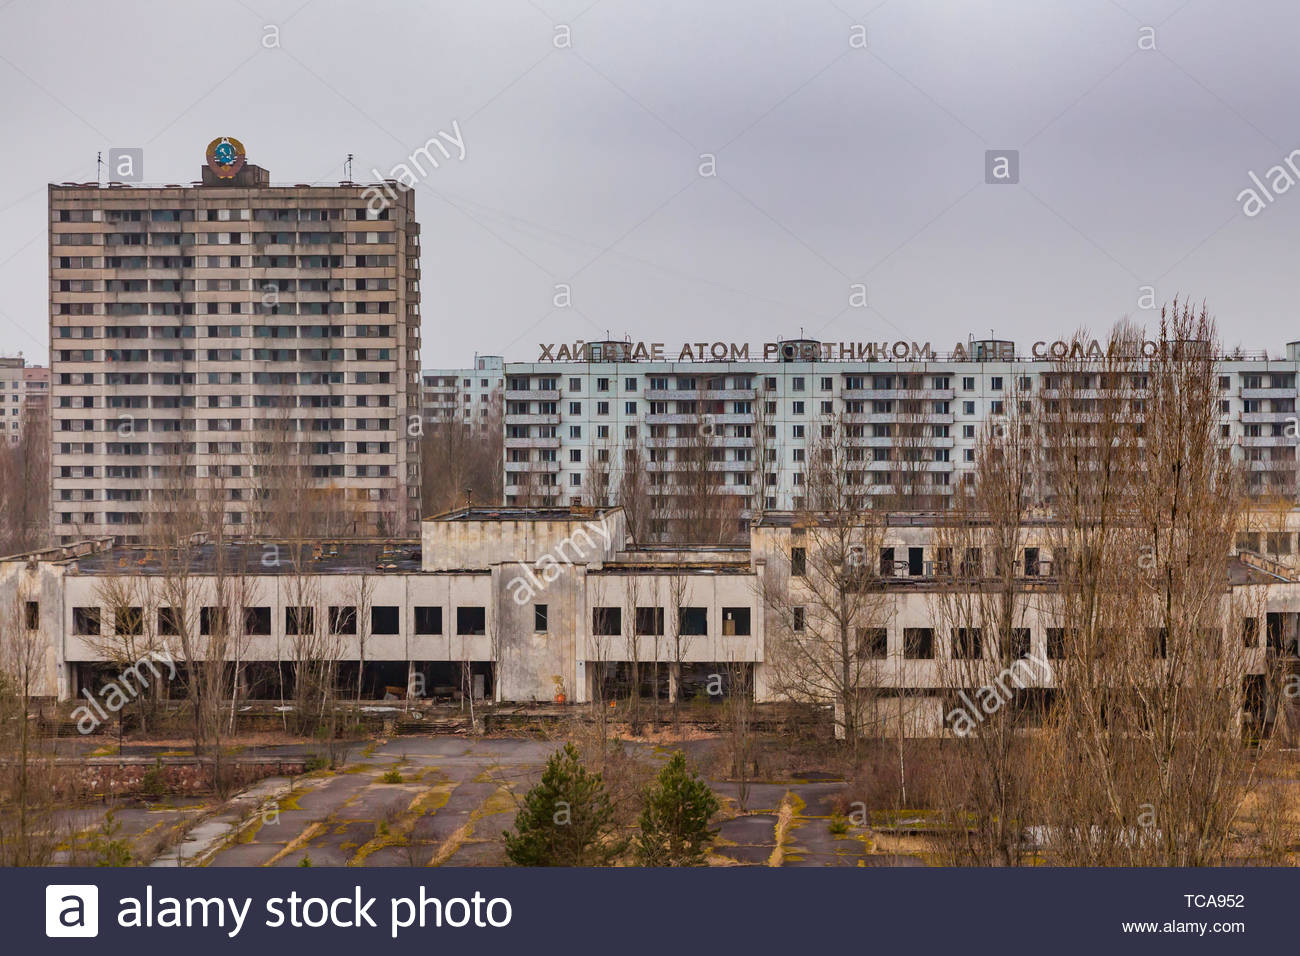 Pripyat, Chernobyl exclusion zone. View of the city center and residential buildings. - Stock Image